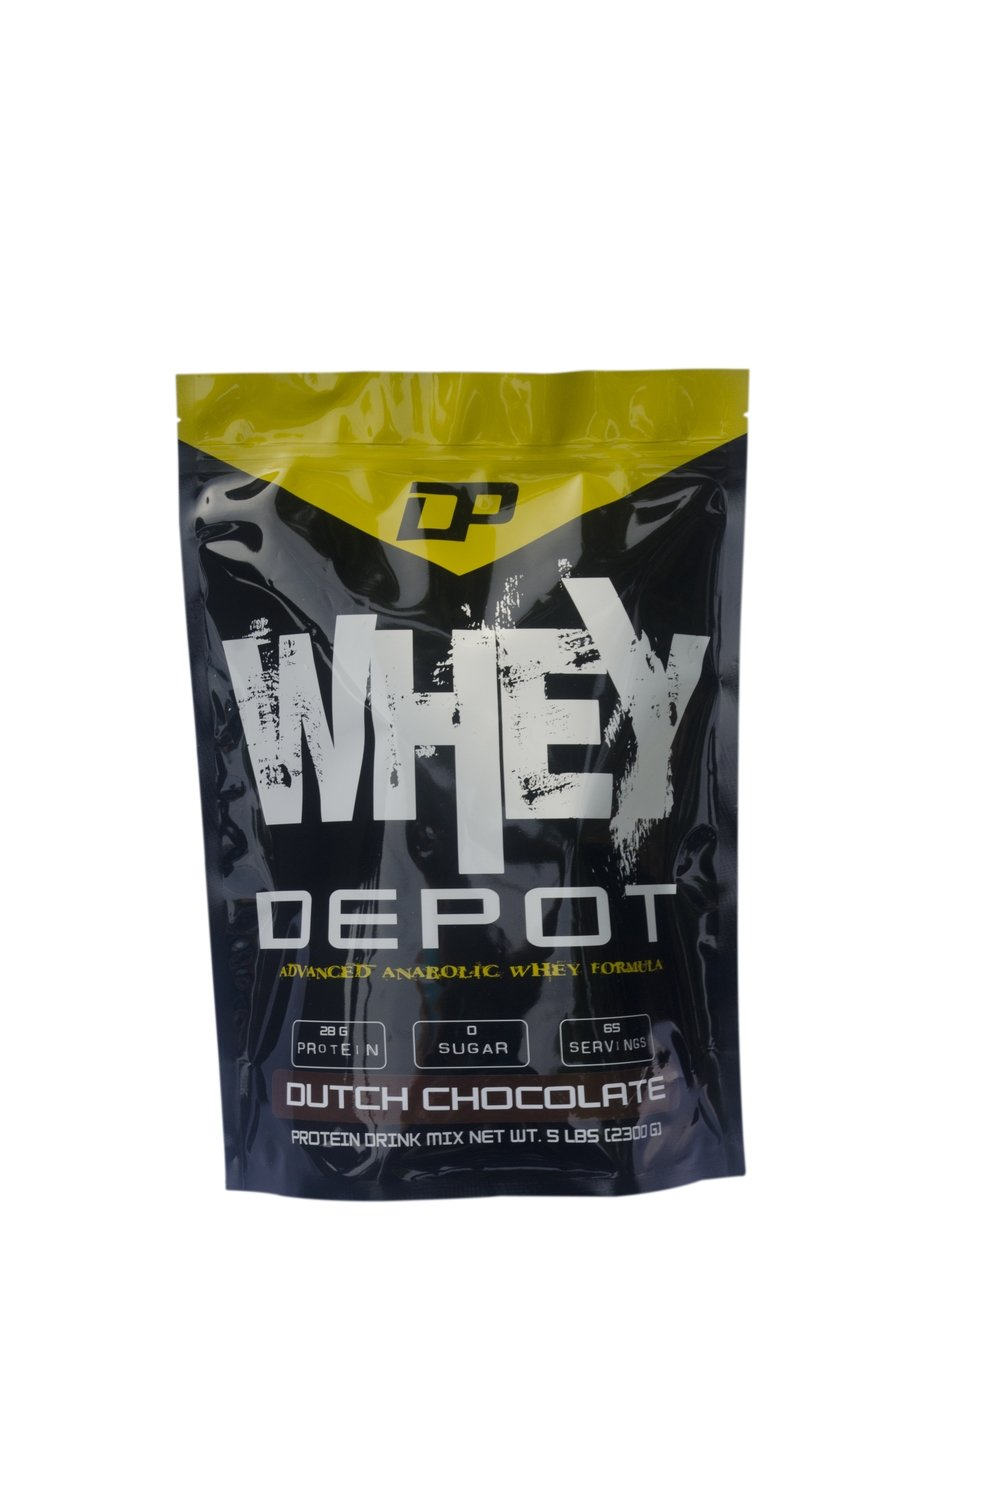 BUY 2 FREE 1! DP Whey Depot 5 lbs (2.3 kg)